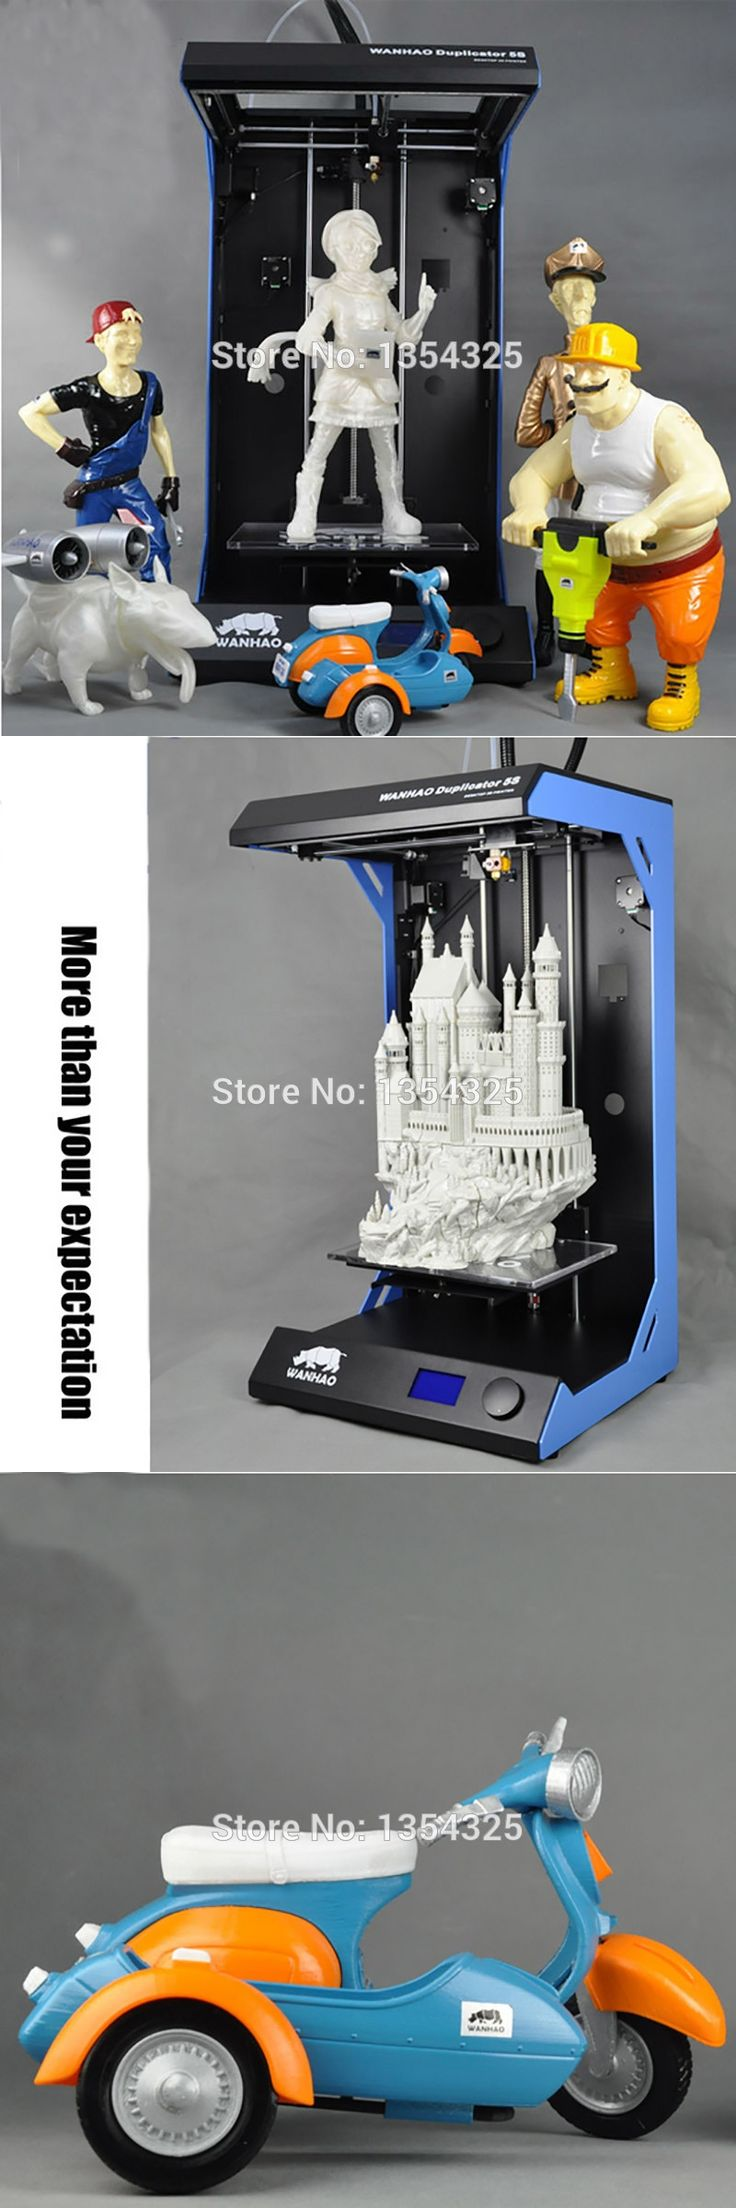 605*205*305MM Ultrafast 3D printer print speed industrial printers Used in industrial medical and other fields of aviation